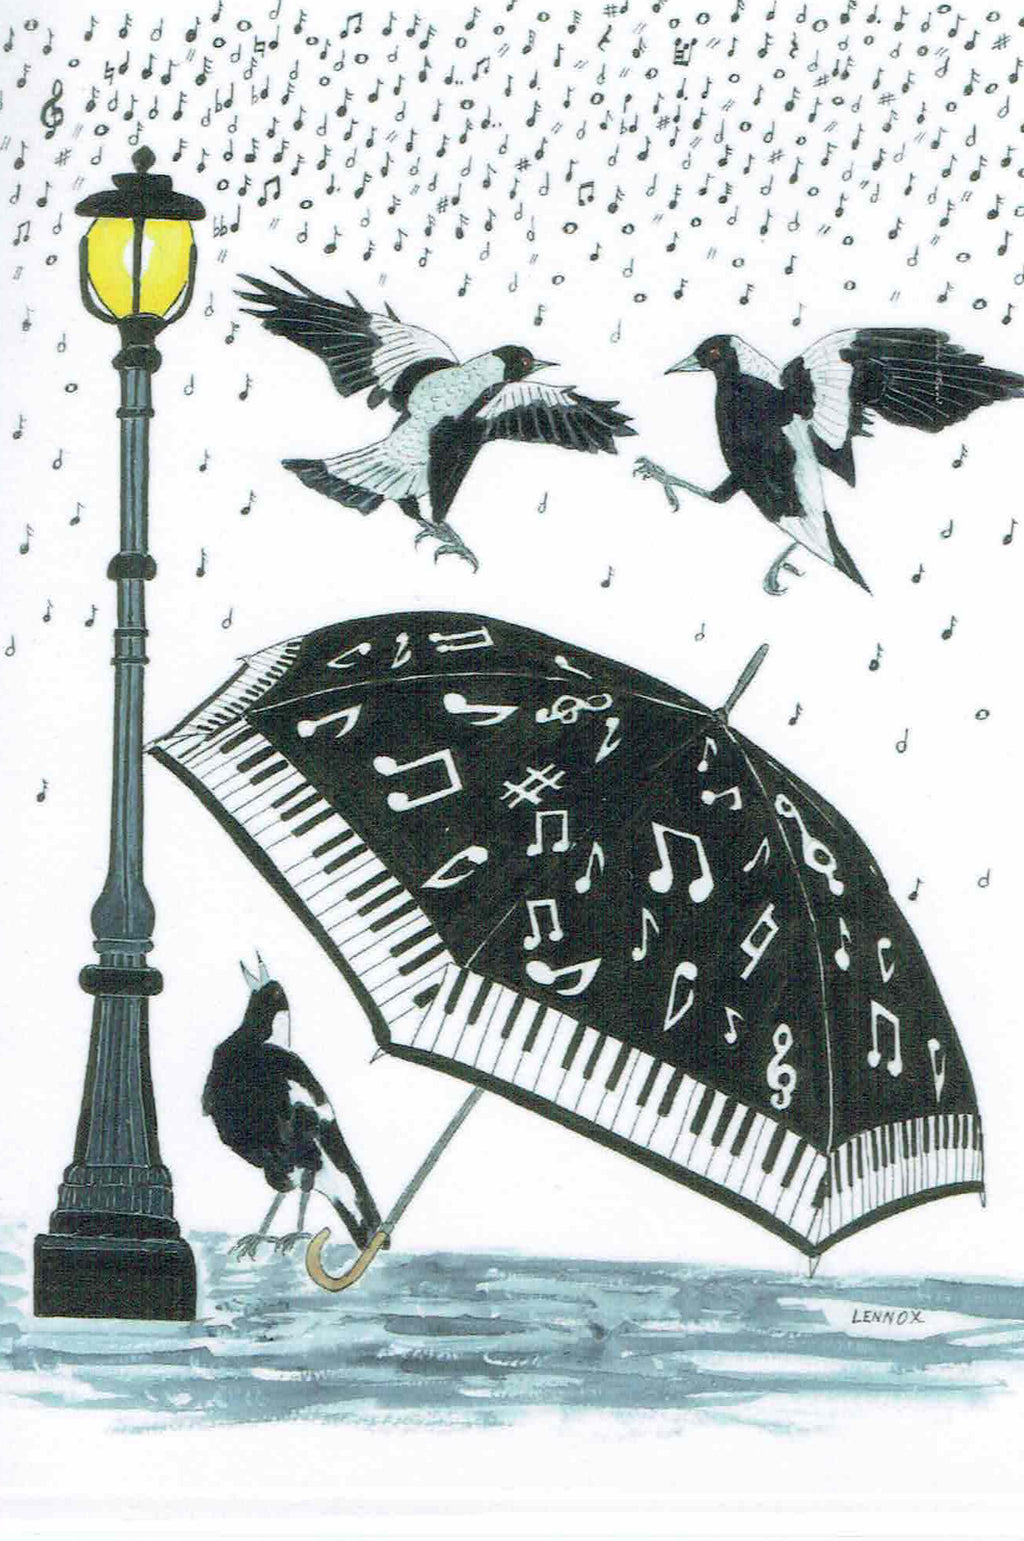 "Card ""Singing in the Rain"" by Tasmanian Artist Grant Lennox"